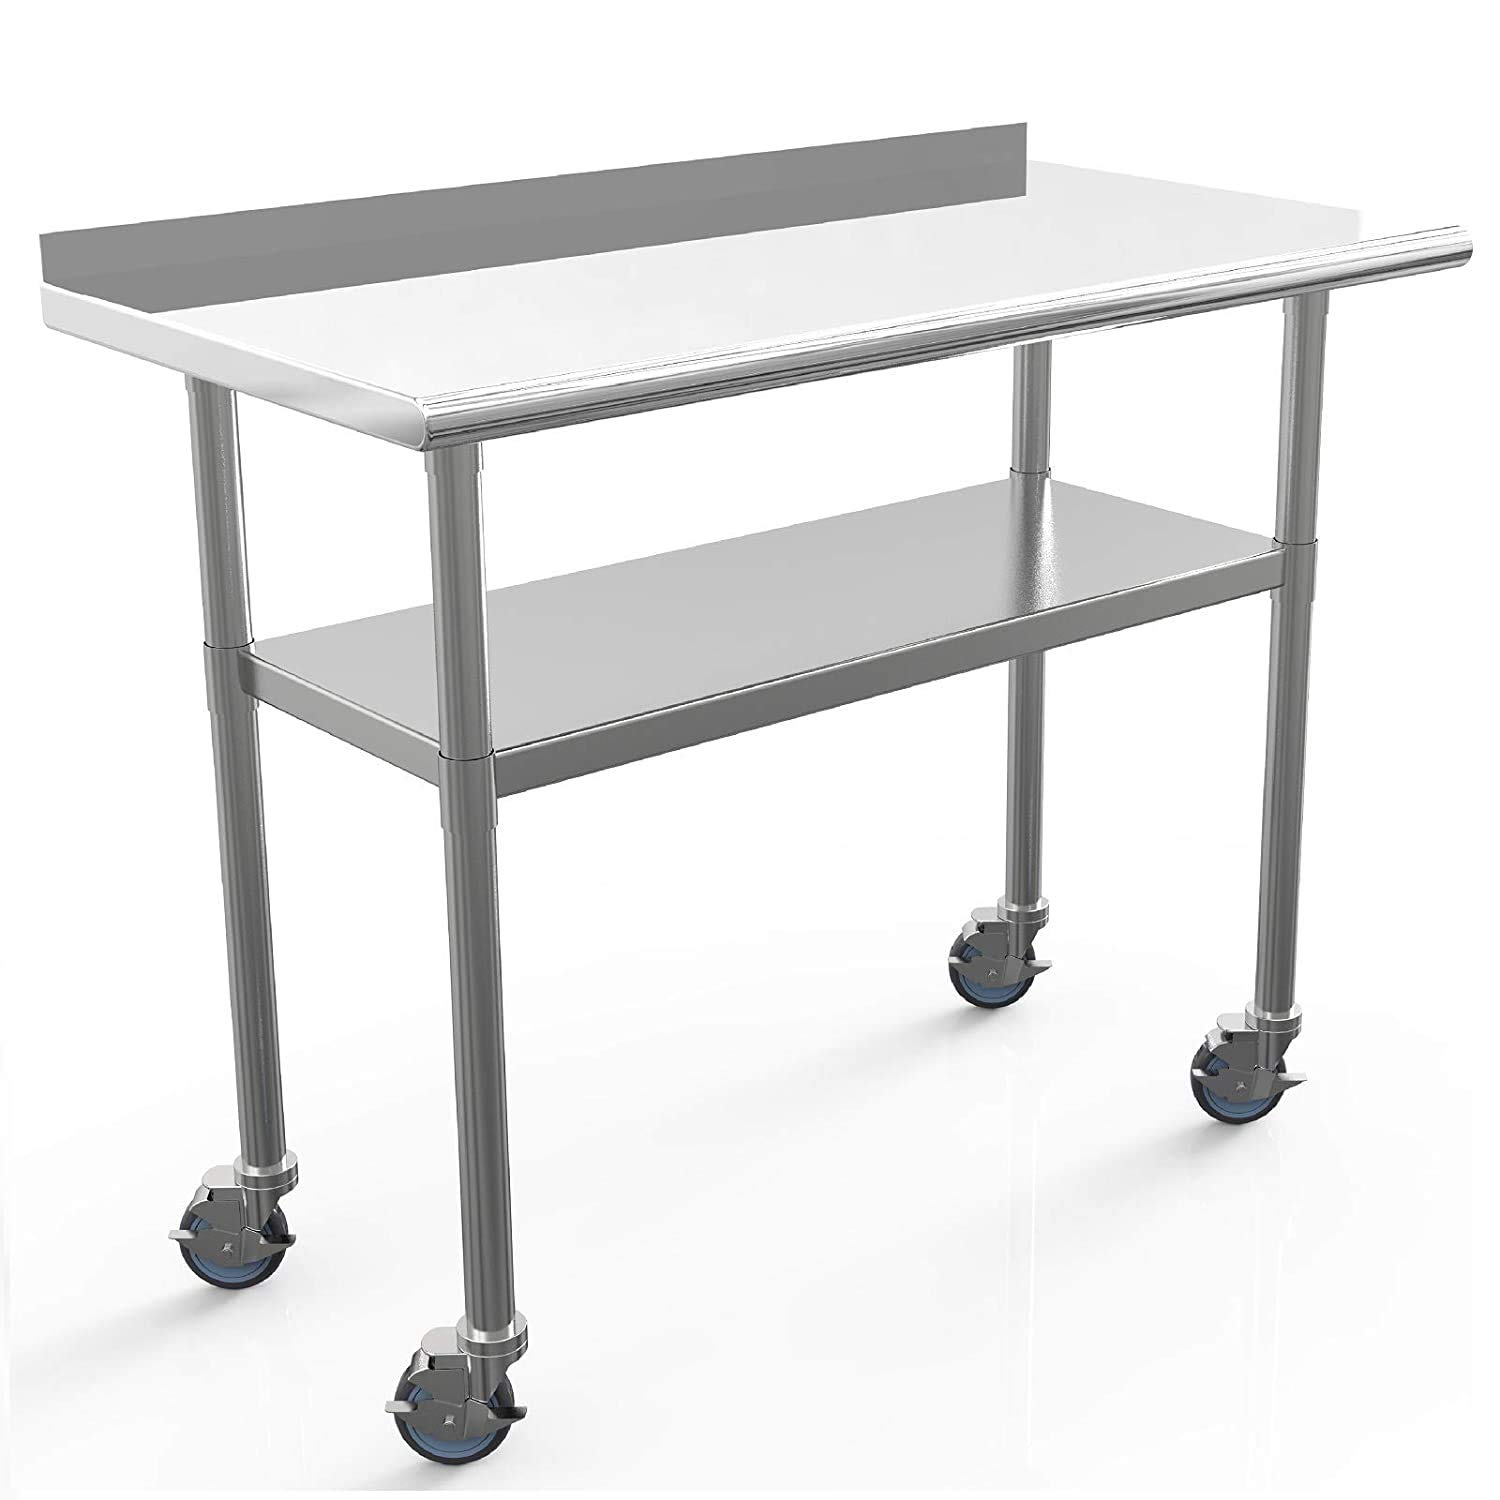 Nurxiovo Commercial Work Table Stainless Steel Table 48 x 24 Inches Heavy Duty Workbench Industrial Restaurant Food Work Tables for Shop Worktop with 1 1/2